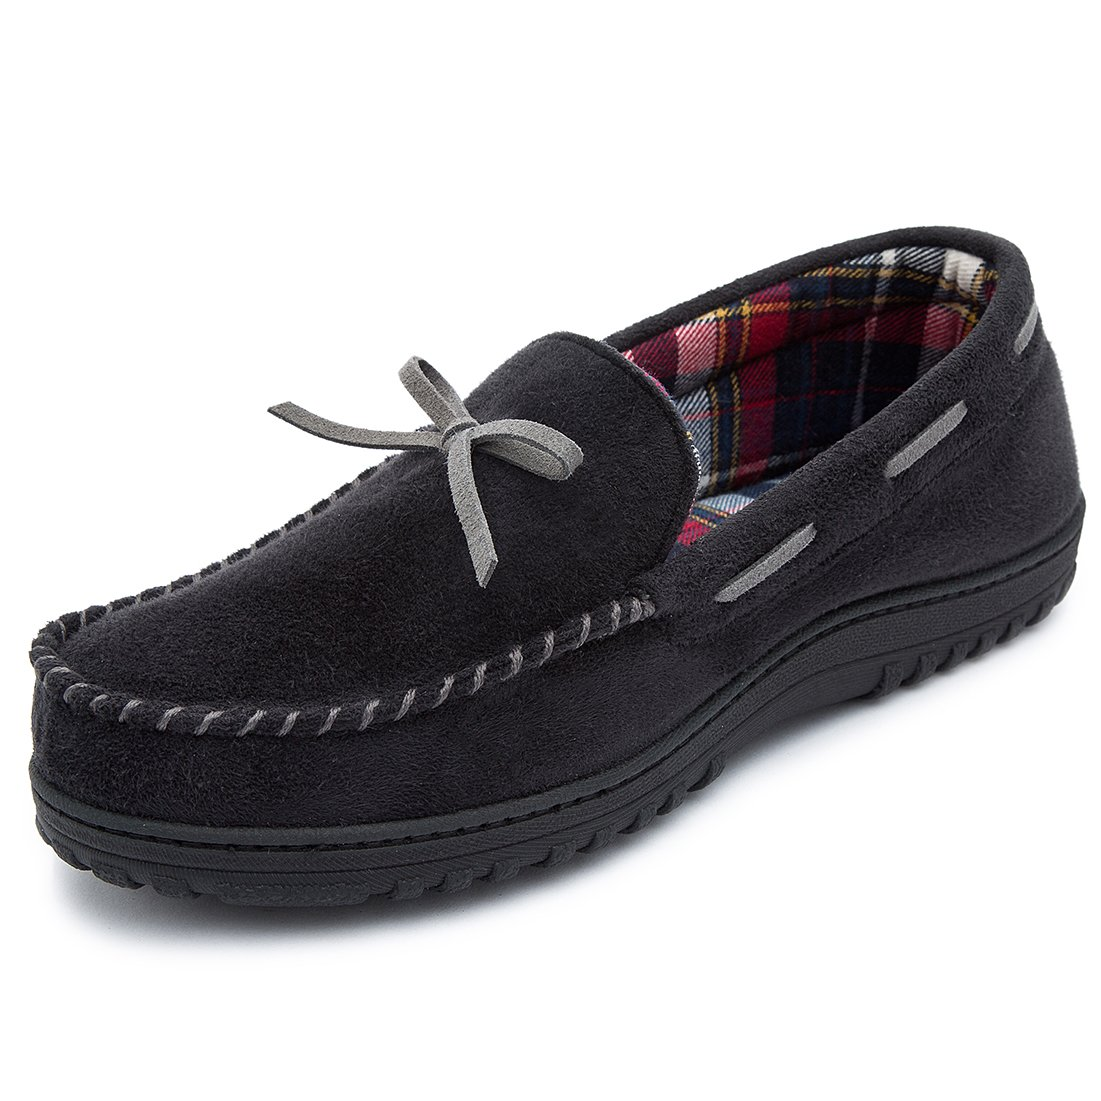 RockDove Men's Memory Foam Faux Moosehide Moccasin Slipper